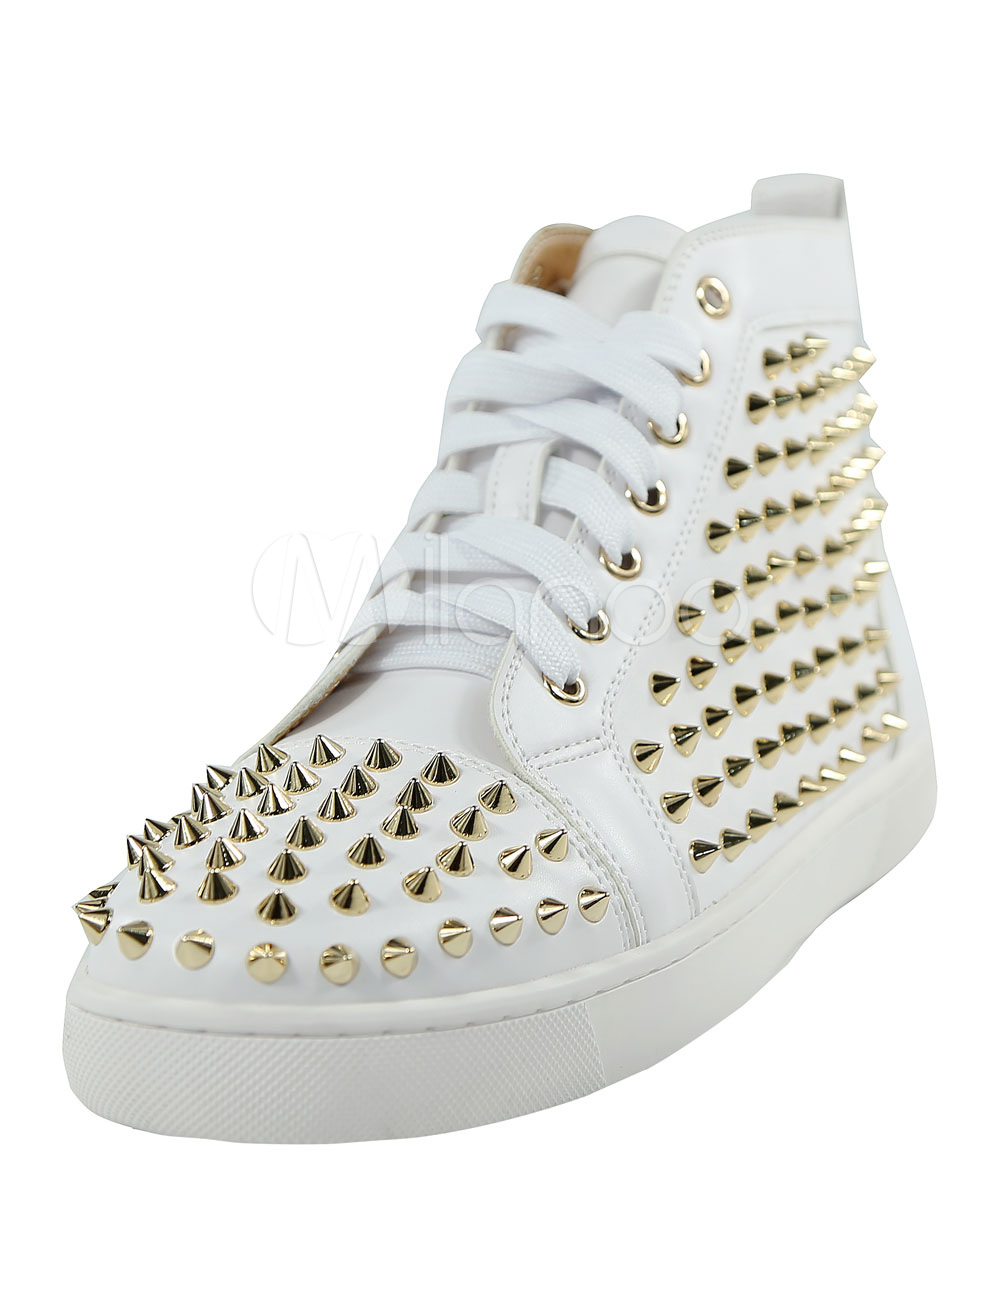 Buy White Skate Shoes Men's Round Toe Lace Up Rivets High Top Sneakers for $94.49 in Milanoo store